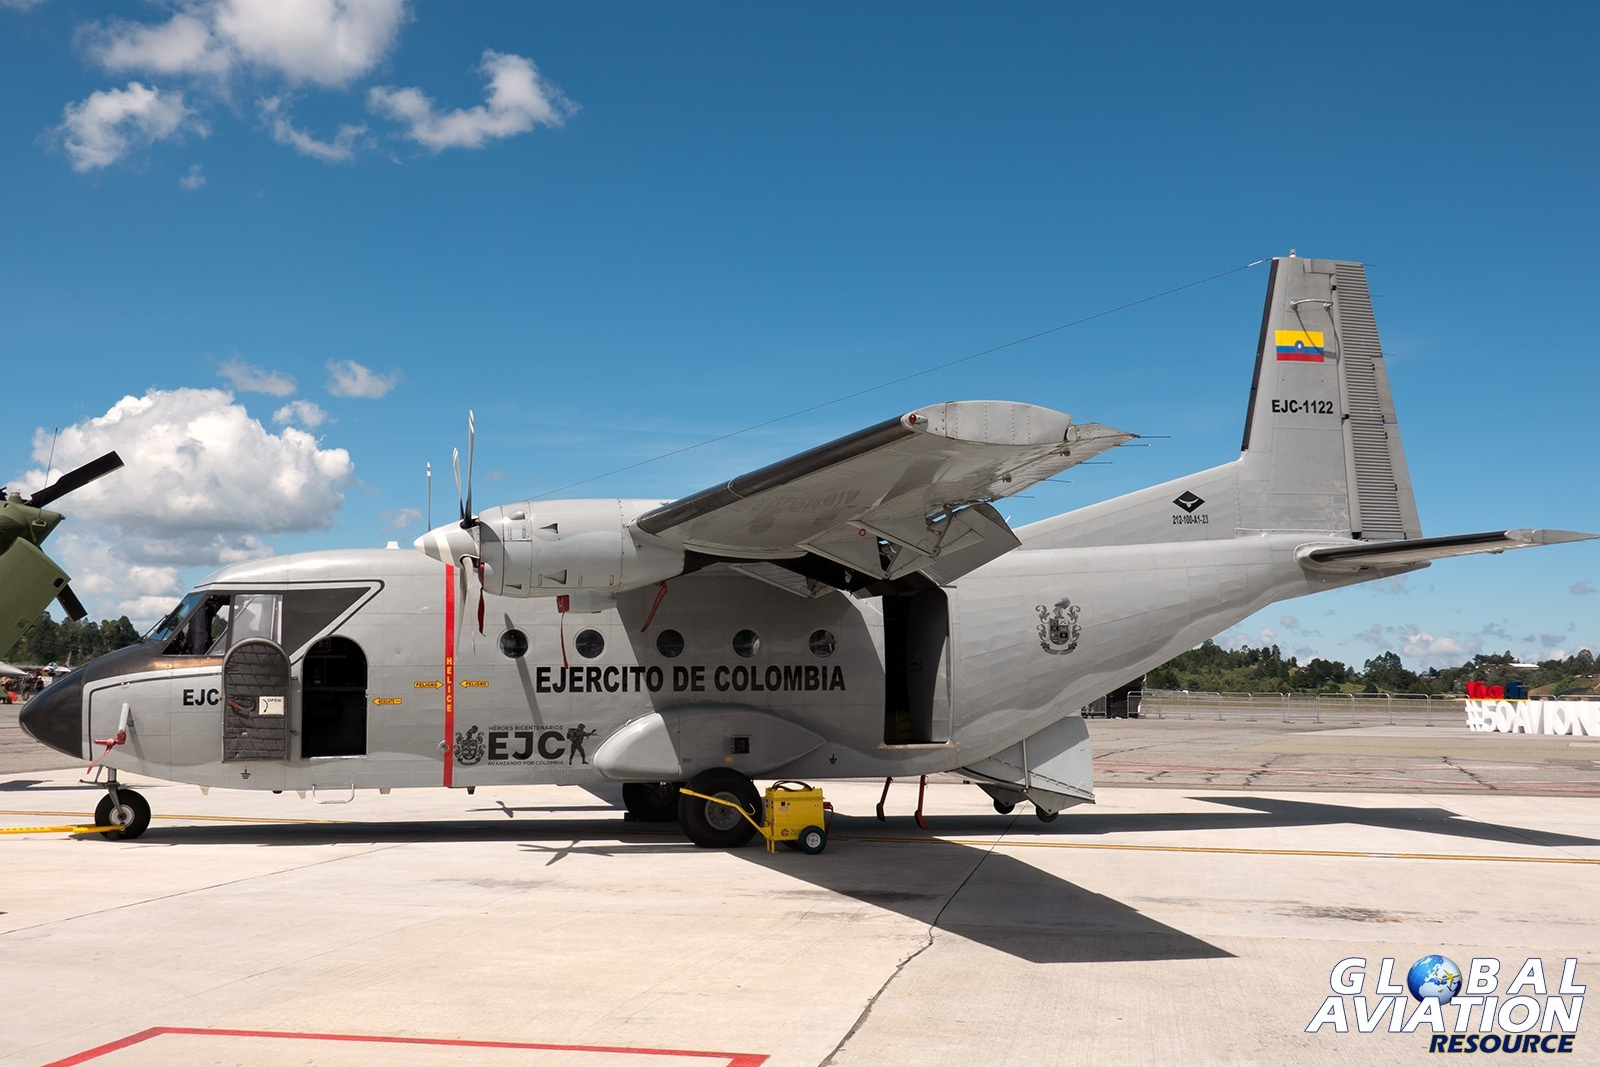 Colombian Army CASA C-212-100 - © Paul Filmer, Global Aviation Resource